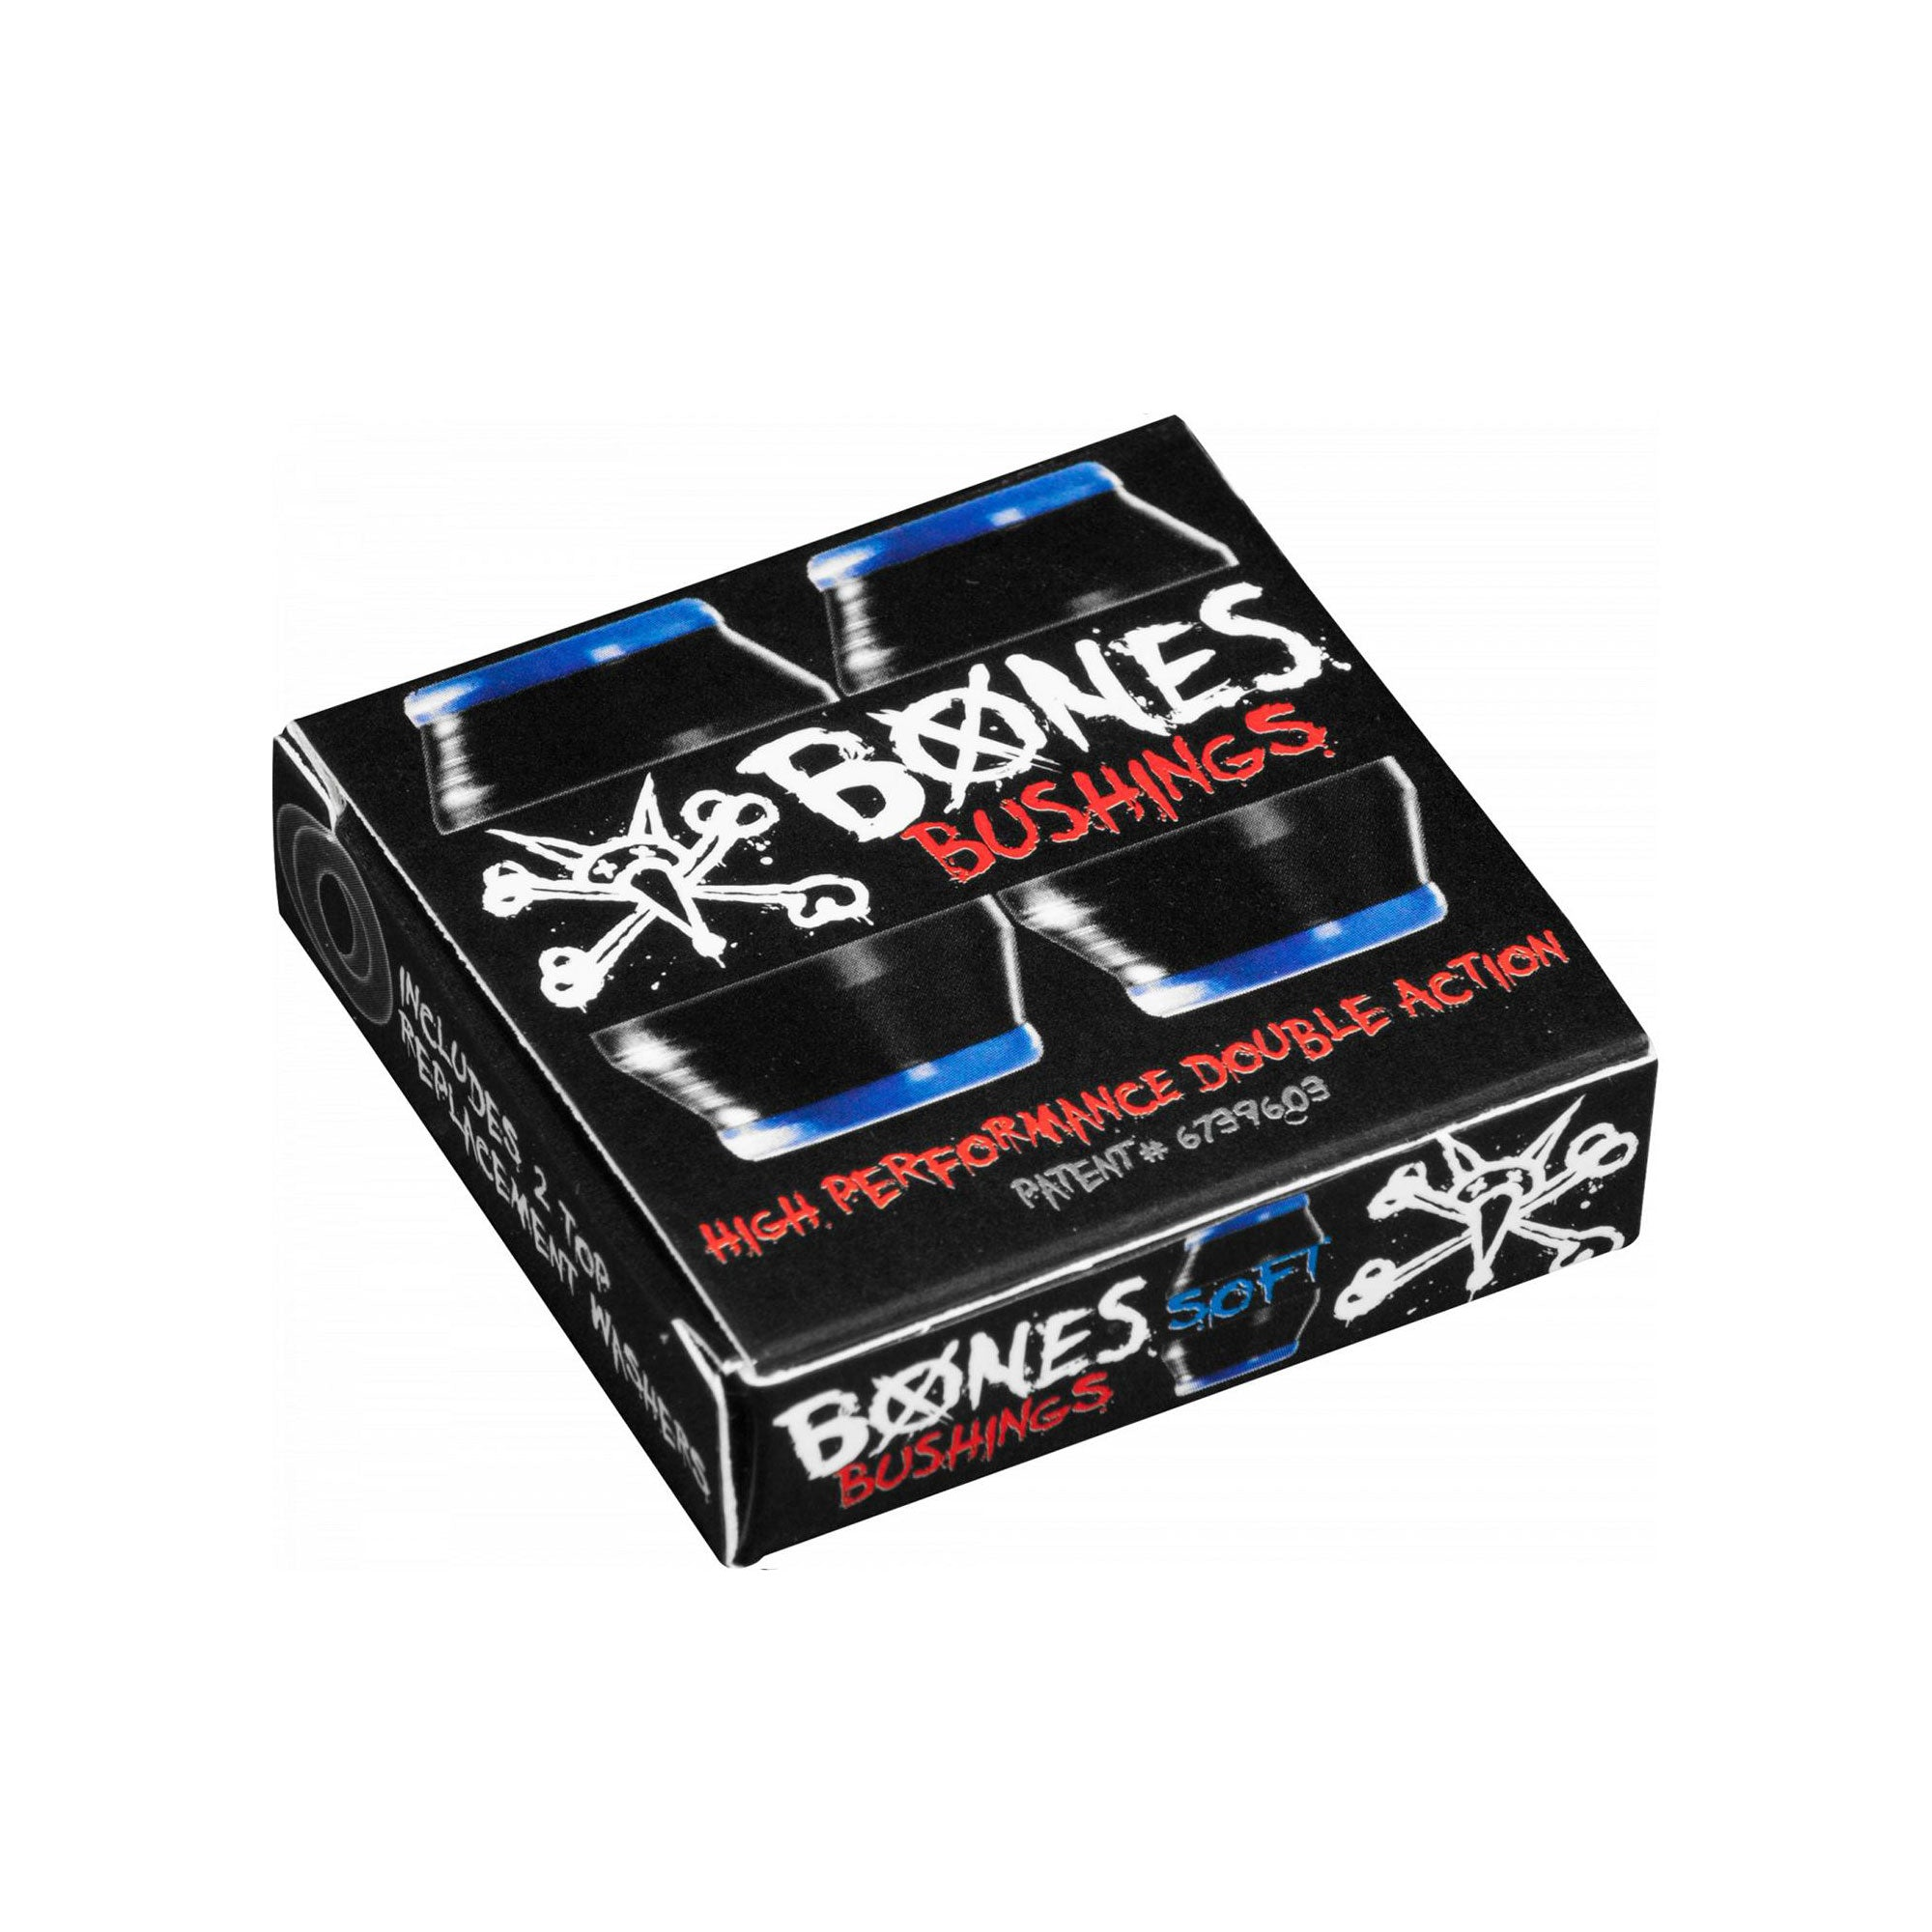 Bones Hardcore Bushings Product Photo #3